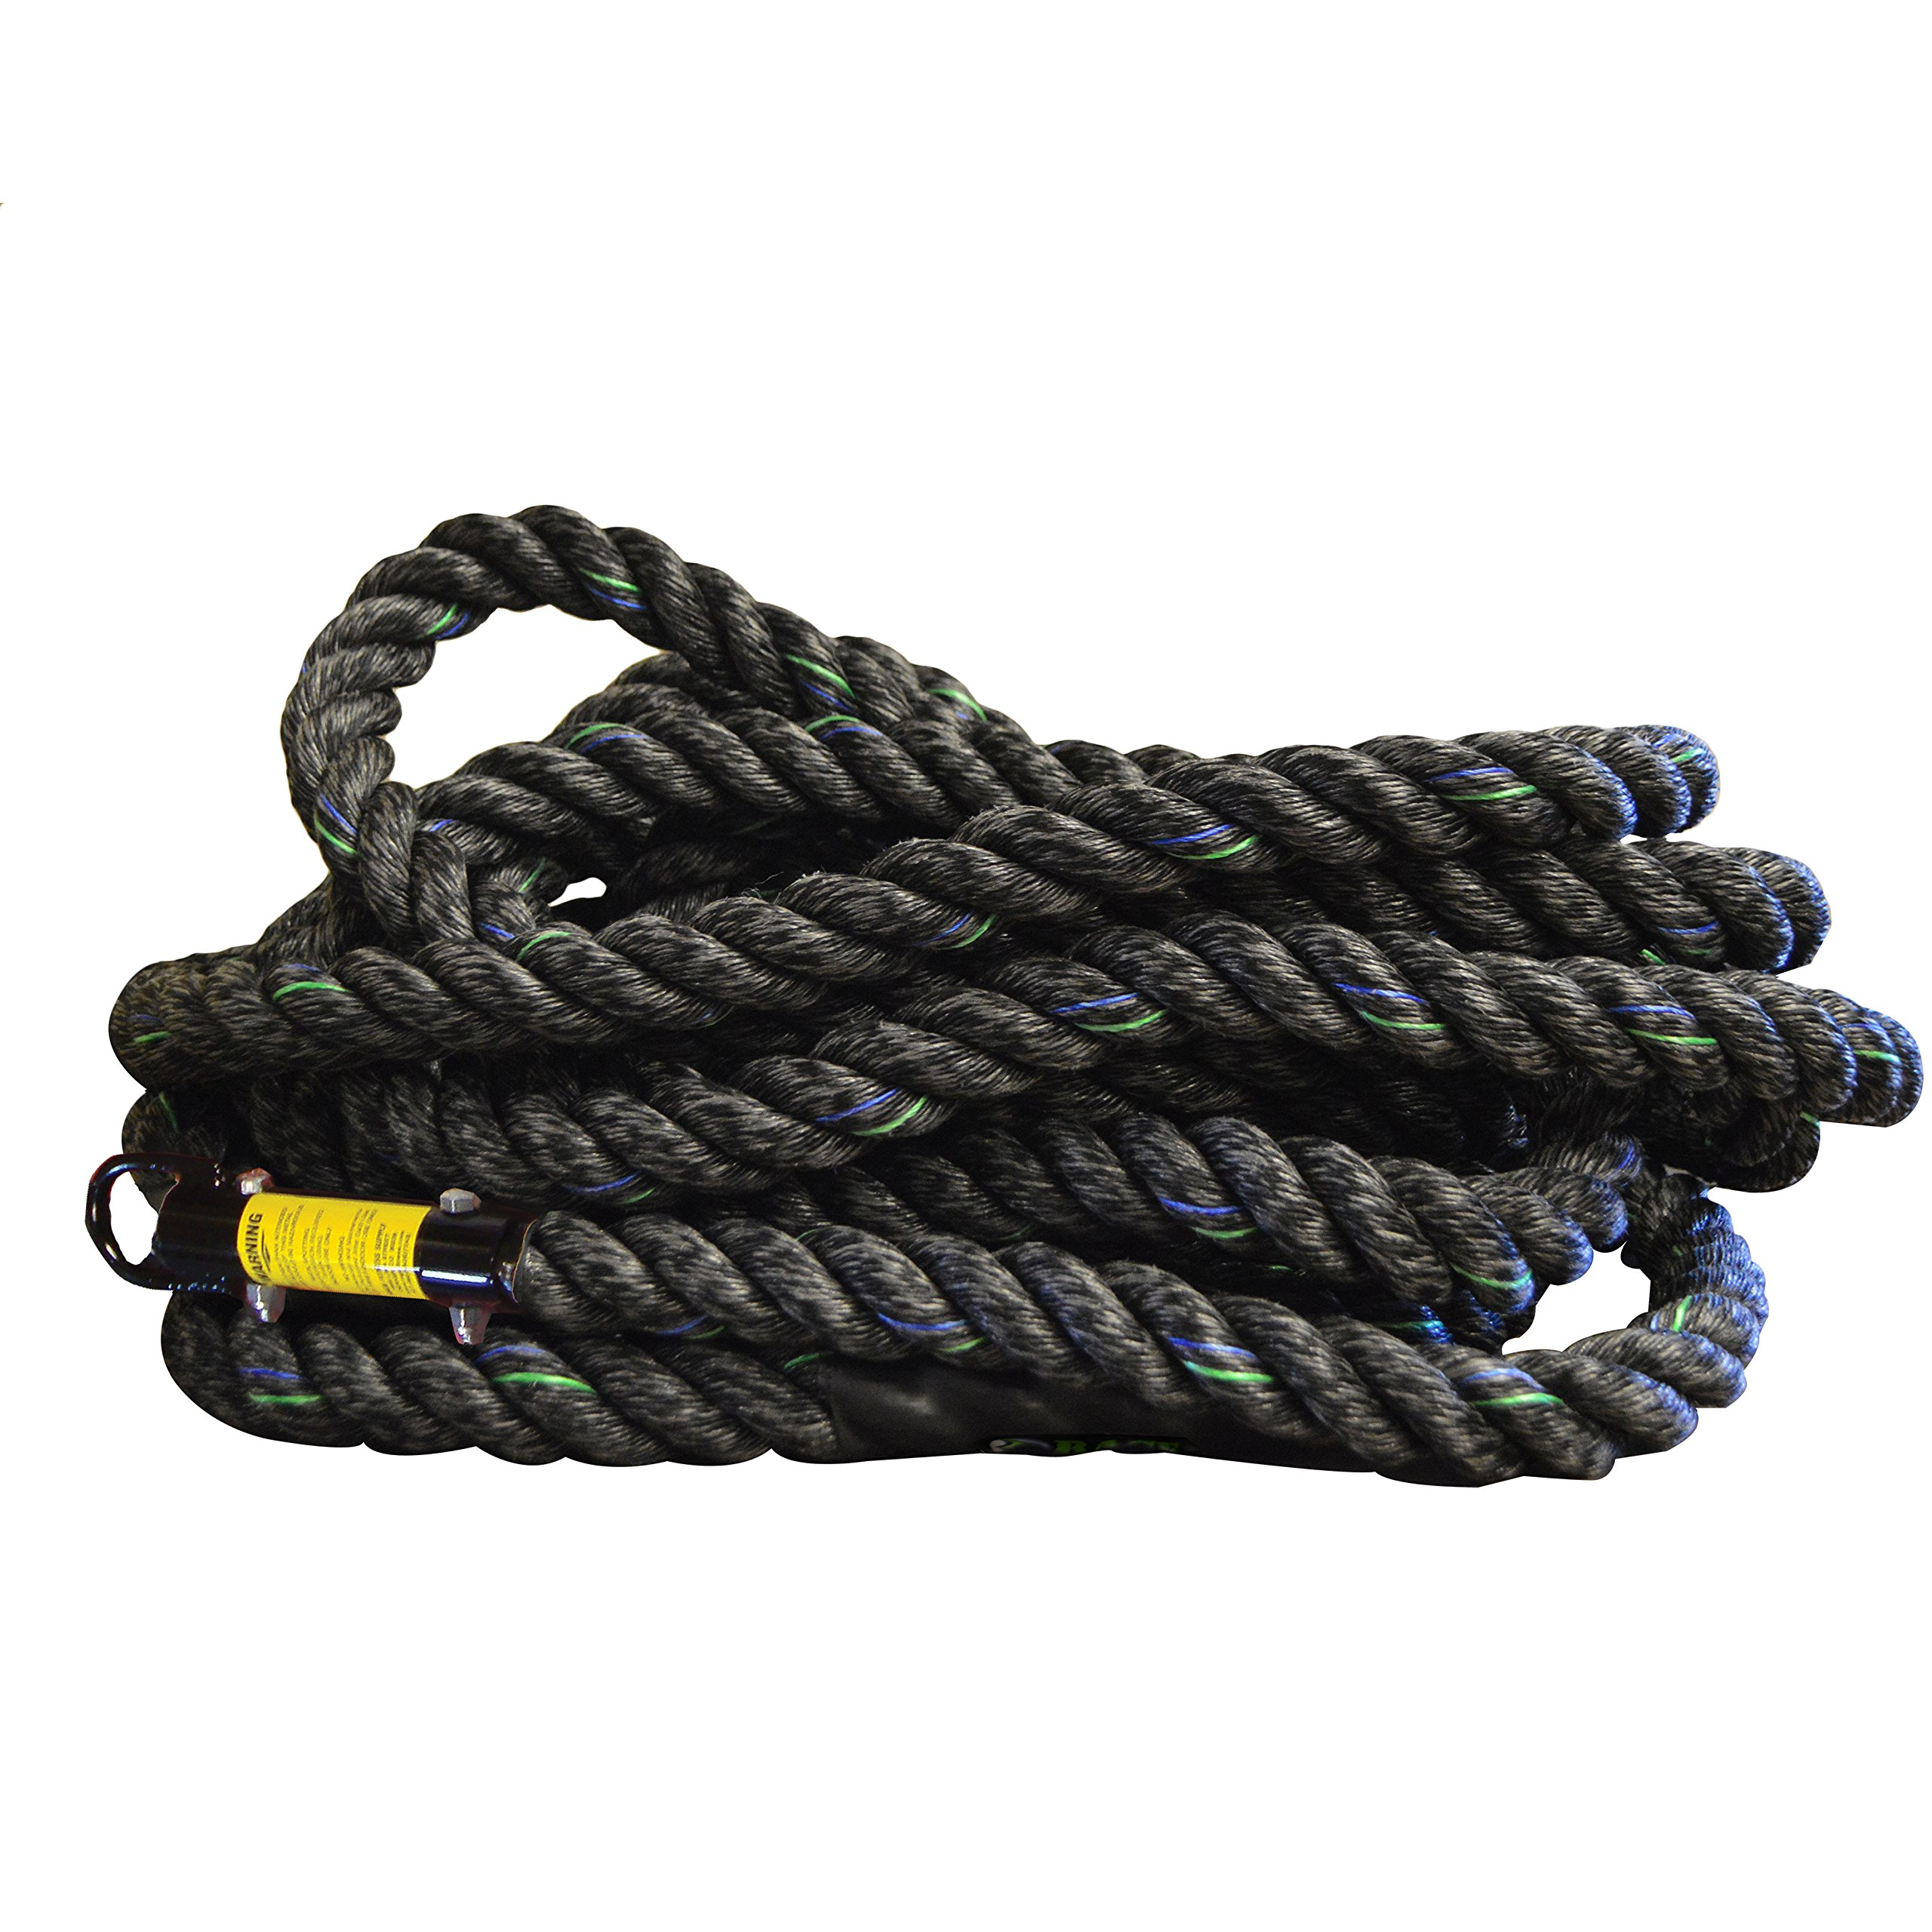 RAGE Fitness Poly Climbing Rope, 18' by Rage Fitness